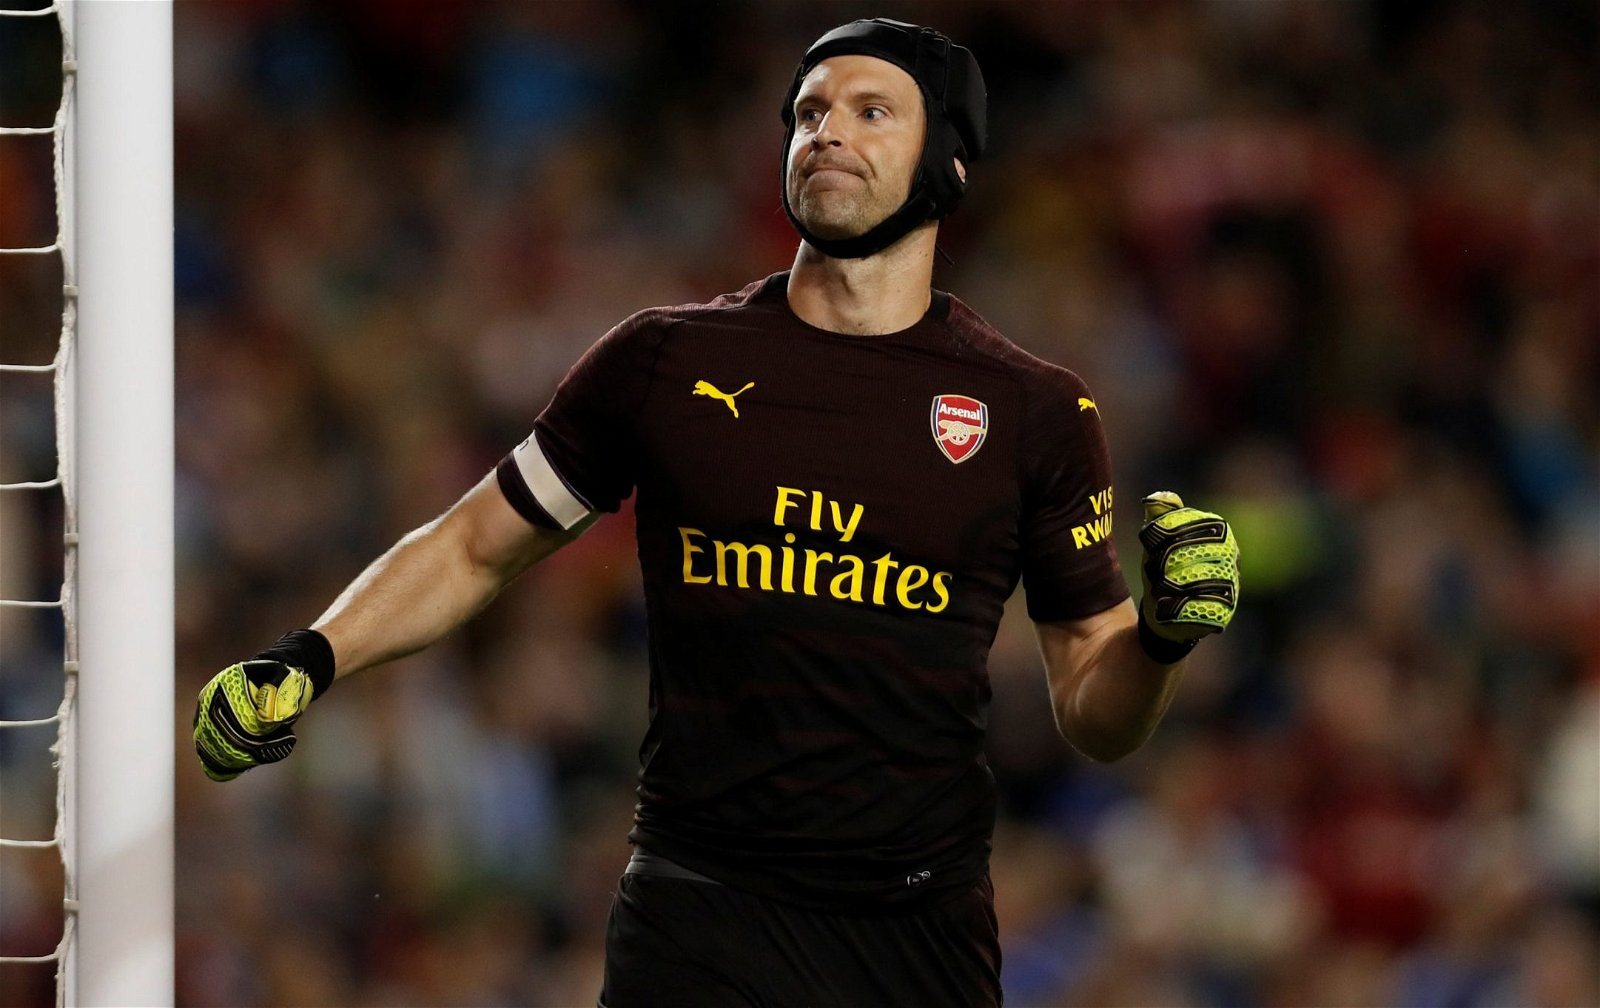 Petr Cech - Arsenal goalkeeper